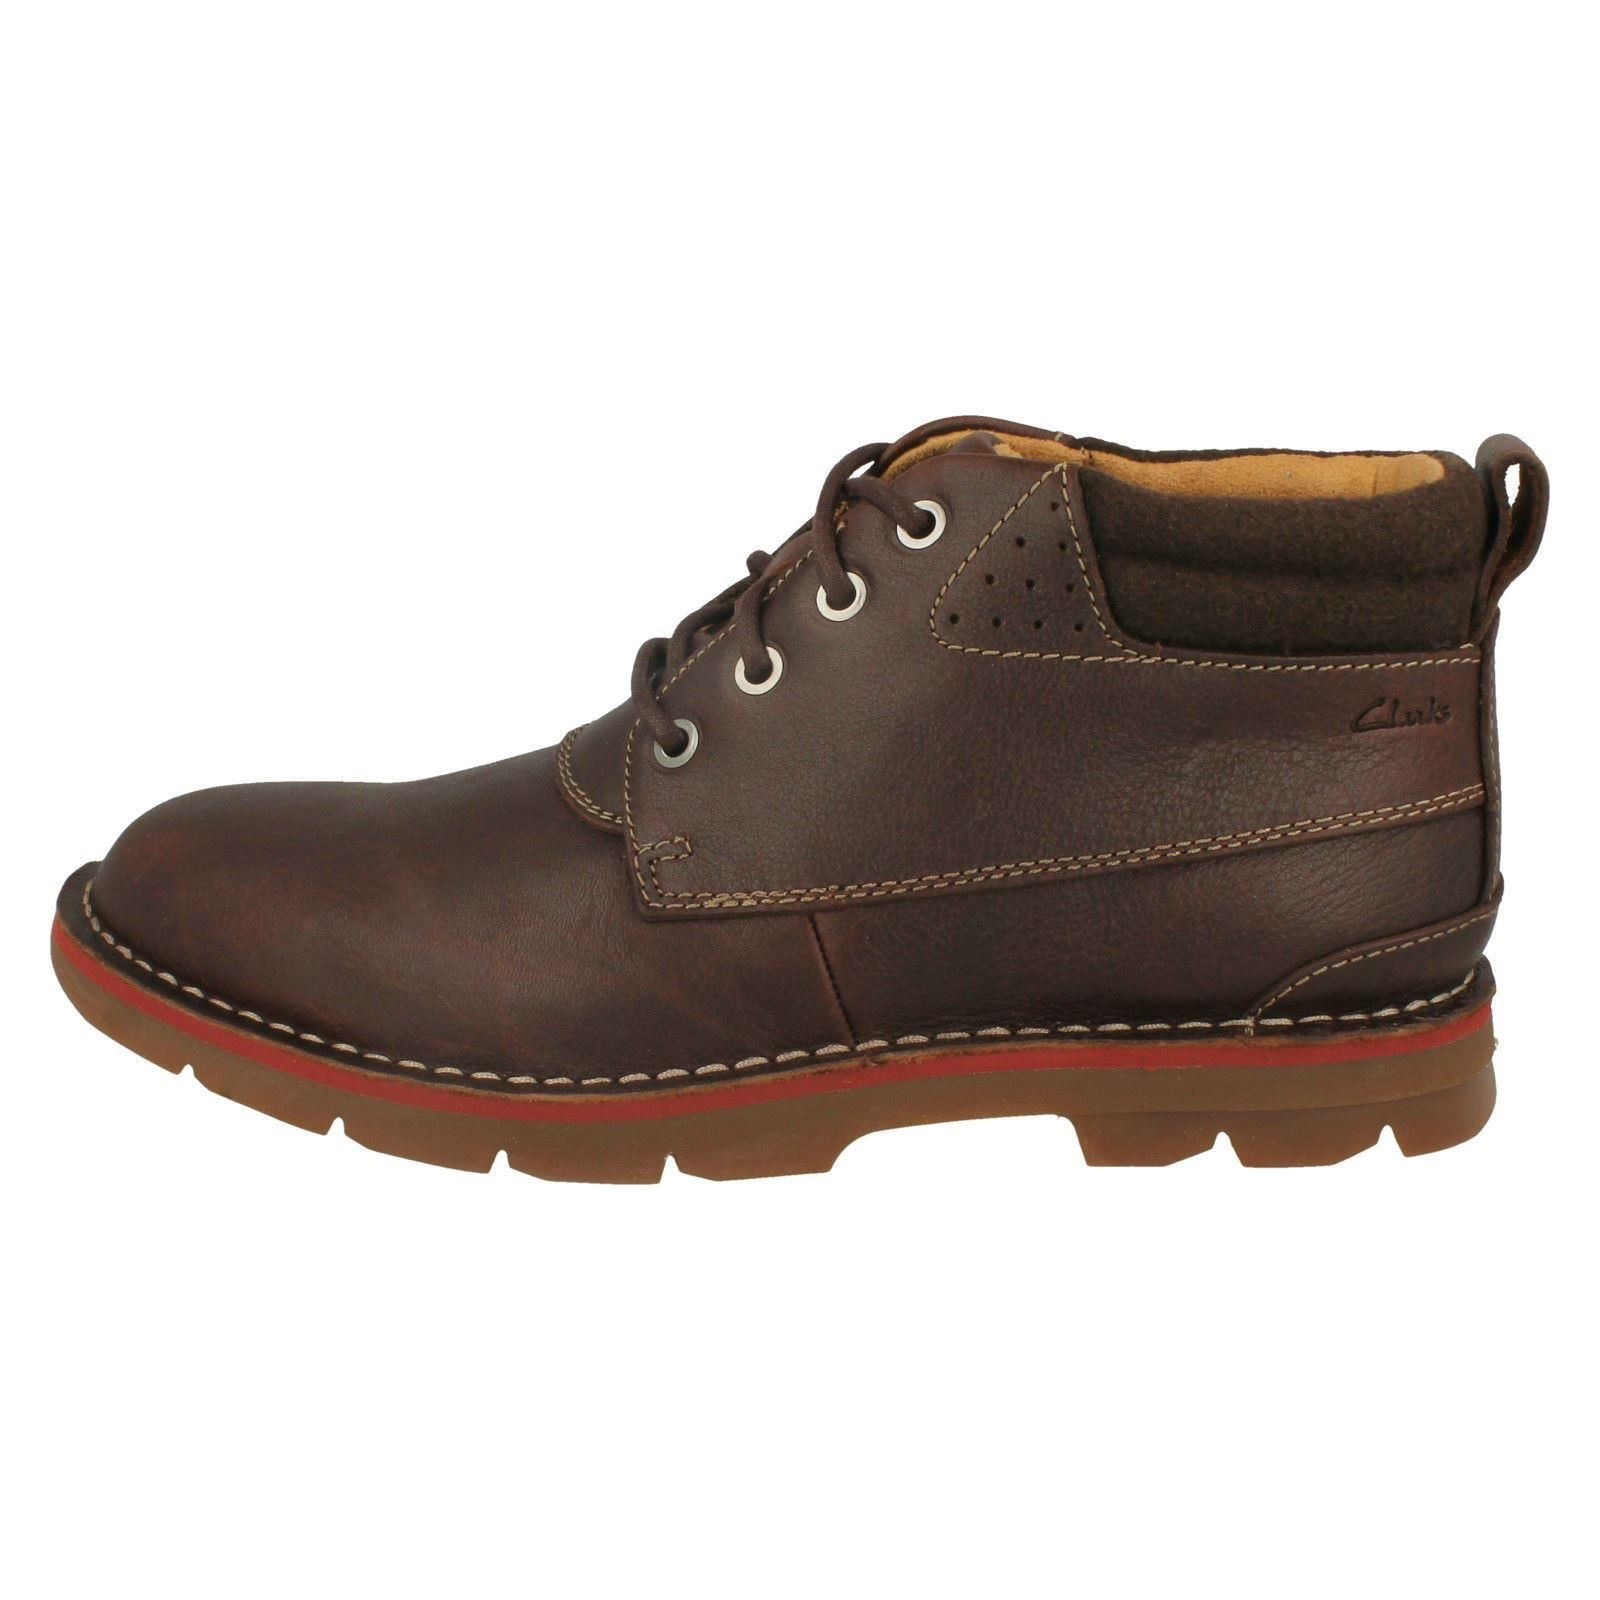 Mens-Clarks-Warm-Lined-Casual-Boots-039-Varick-Heal-039 thumbnail 6